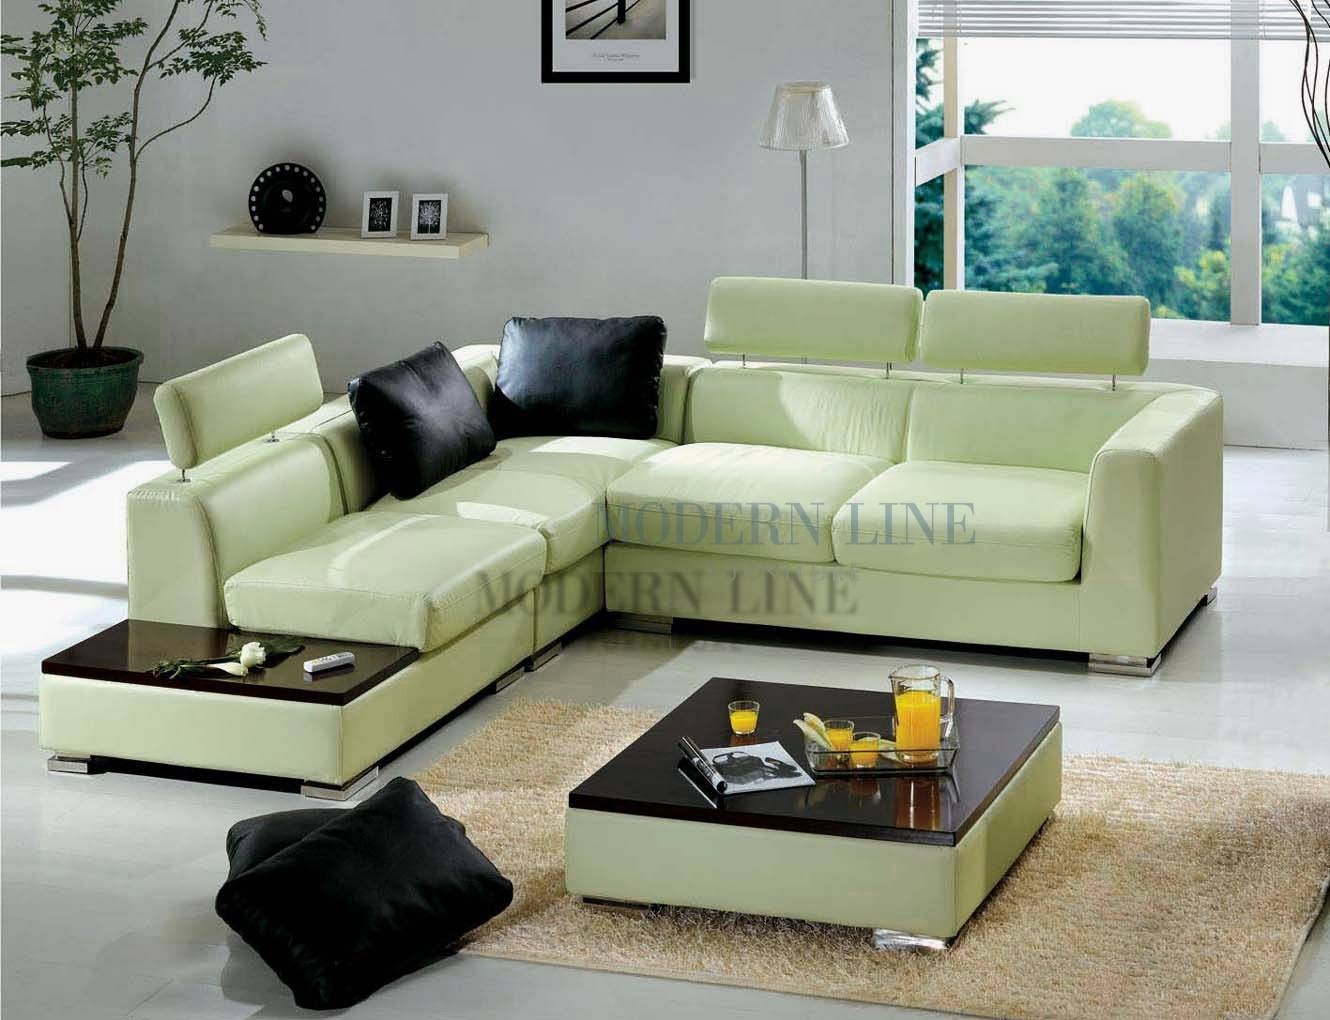 commercial sofas and chairs yellow leather office chair 30 photos green sectional sofa